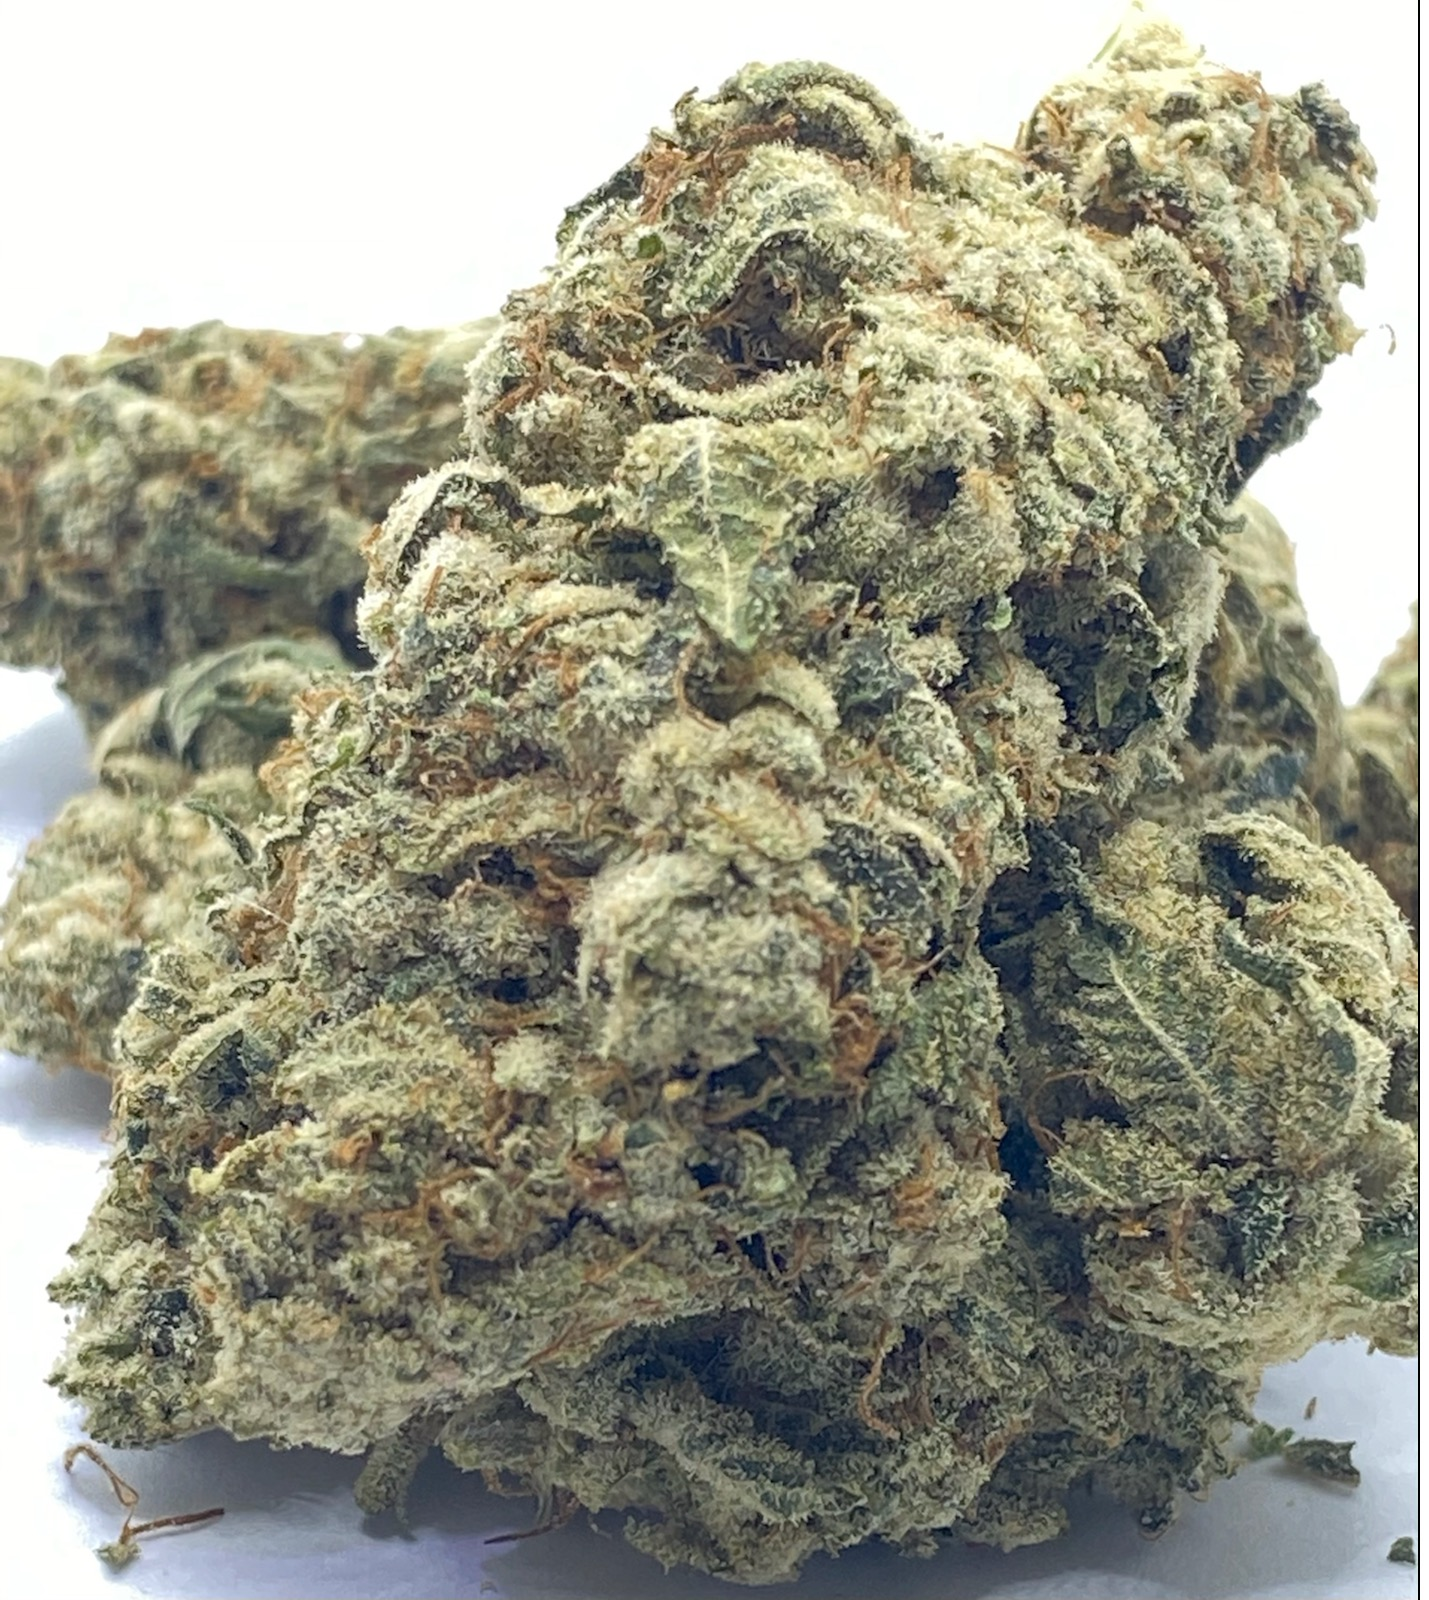 select co op dc galactic glue weed photo